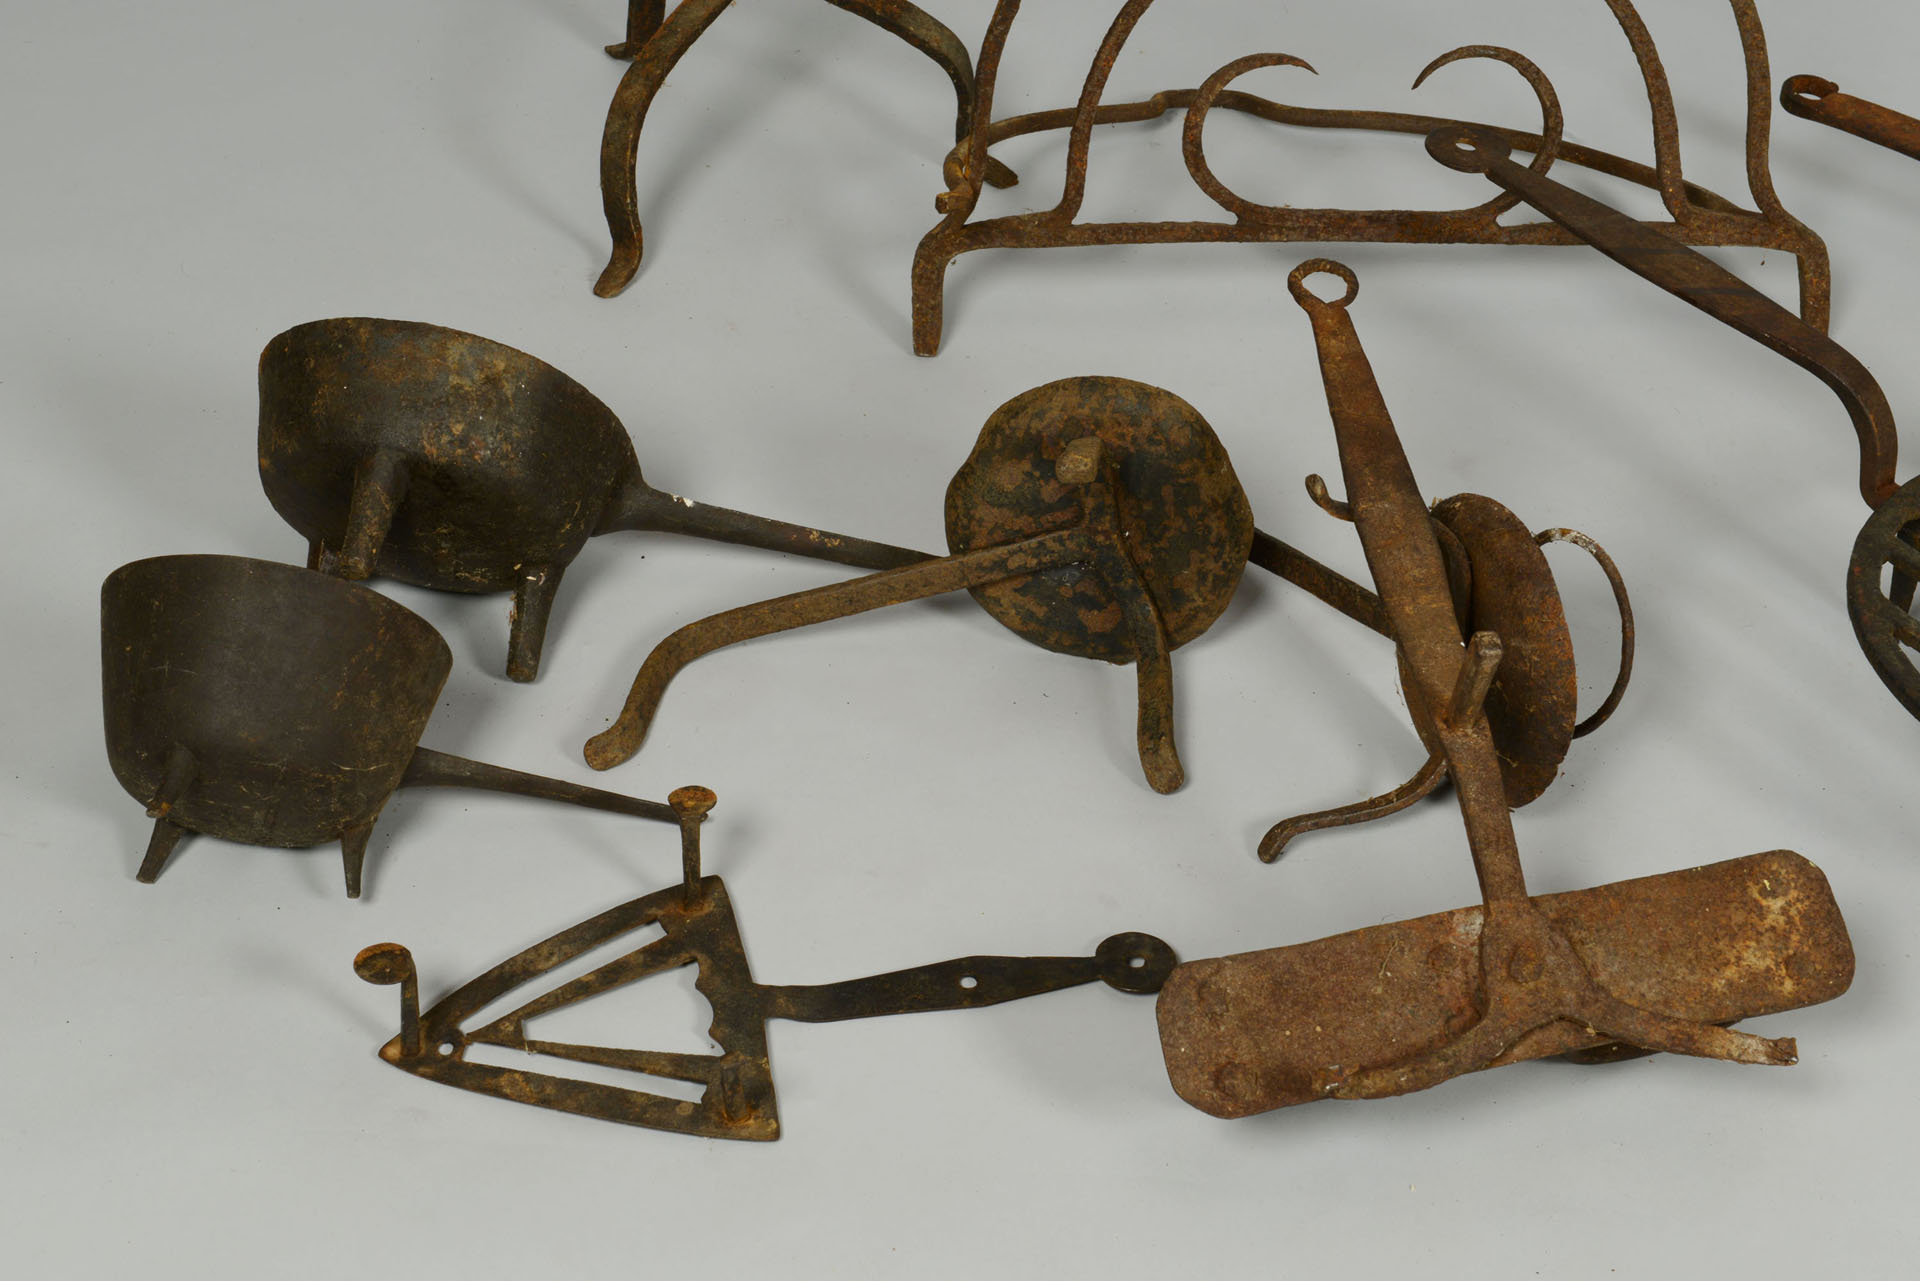 Lot 540 Grouping Of Early Wrought Iron Hearth Items 10